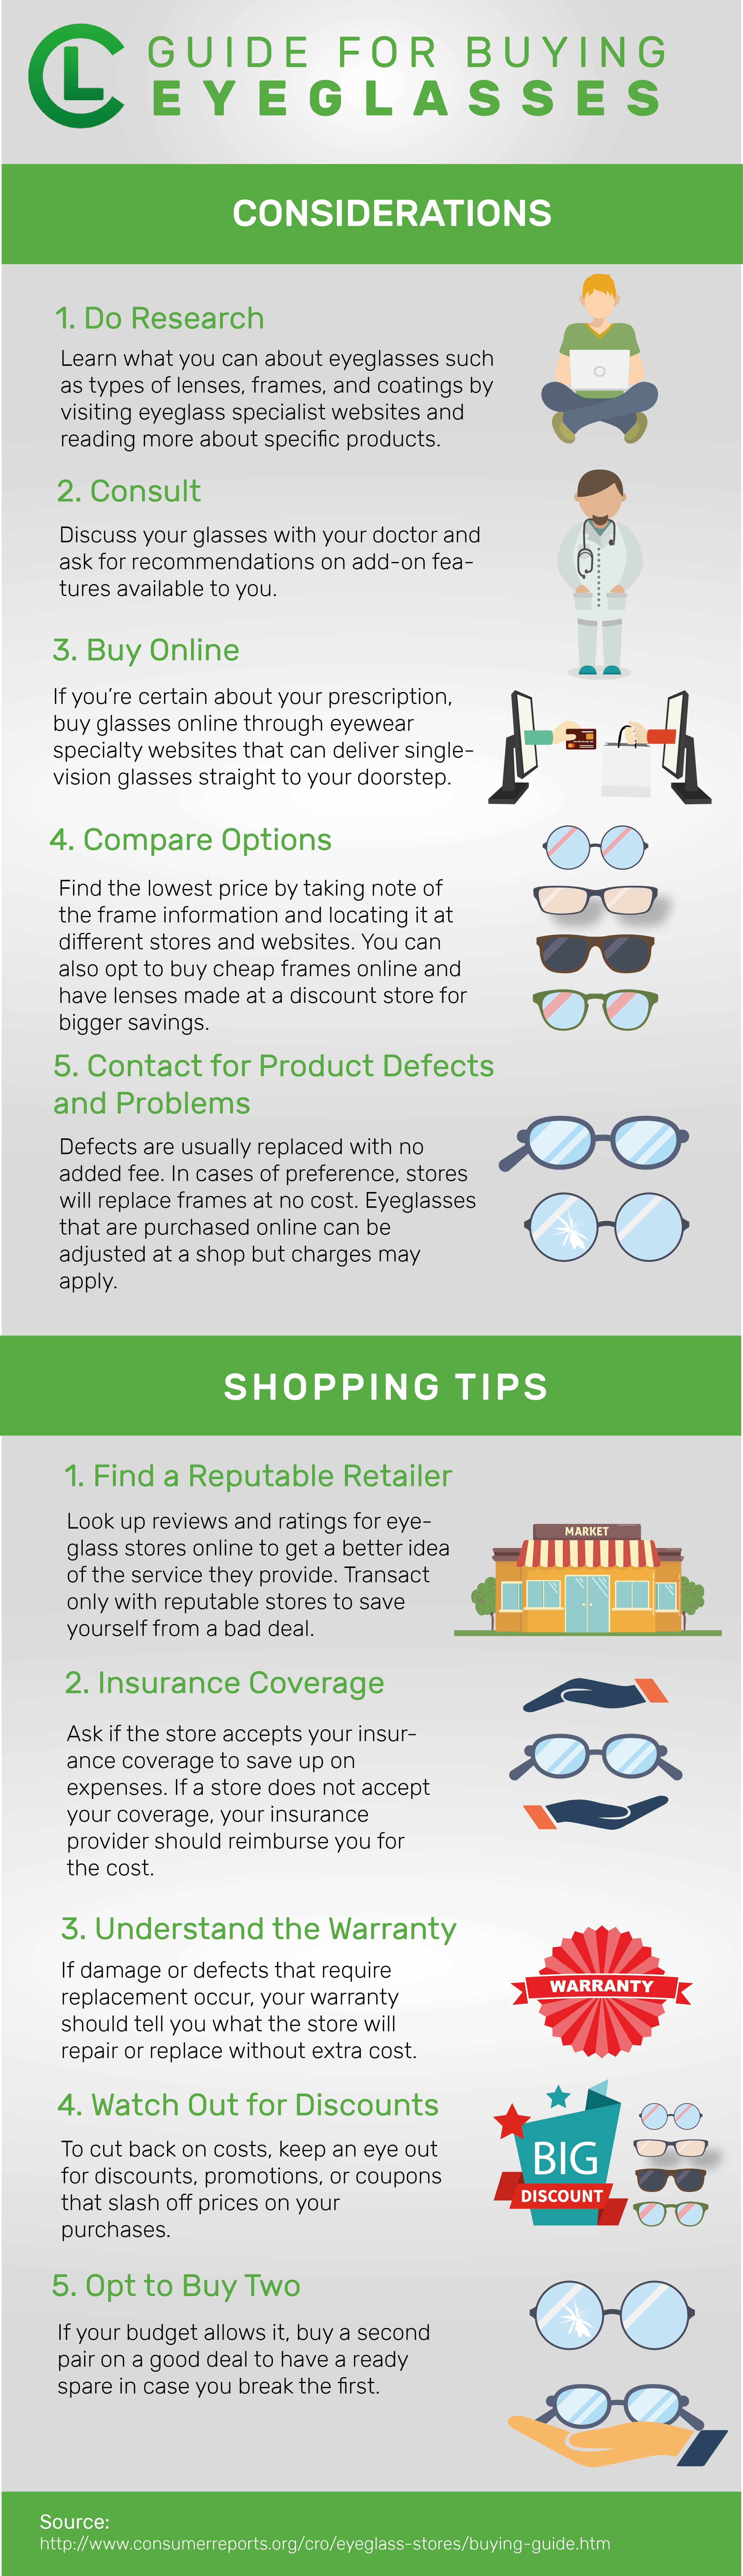 Guide For Buying Eyeglasses Infographic